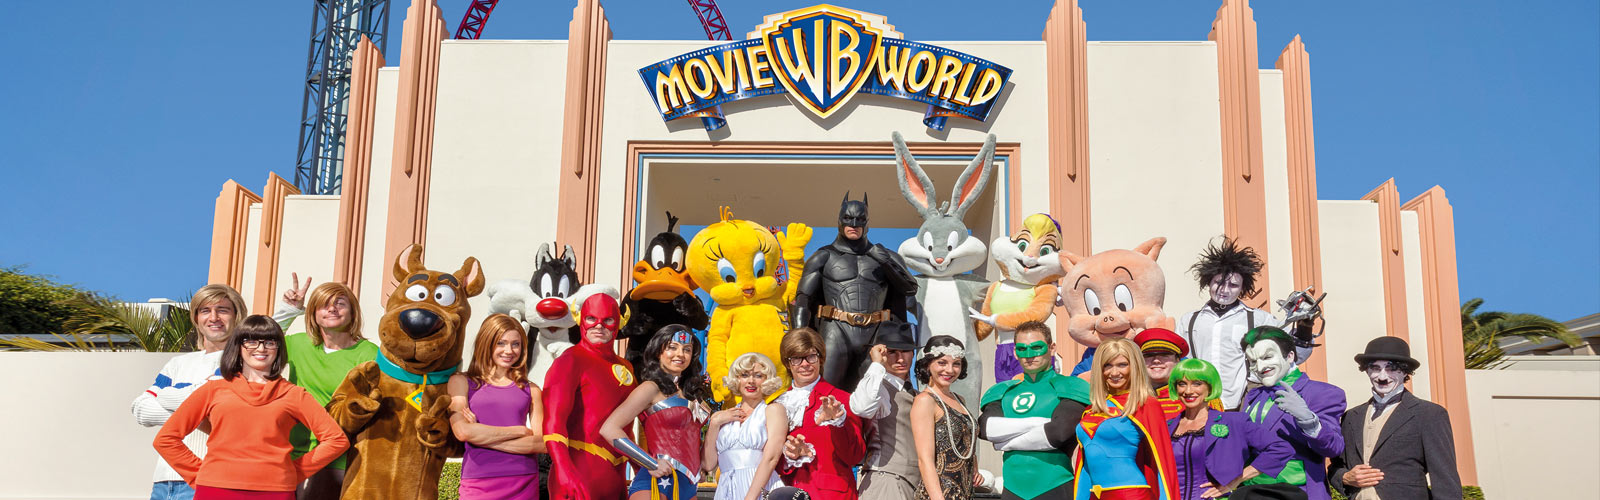 Movieworld Deals Tickets Passes 2019 Experience Oz